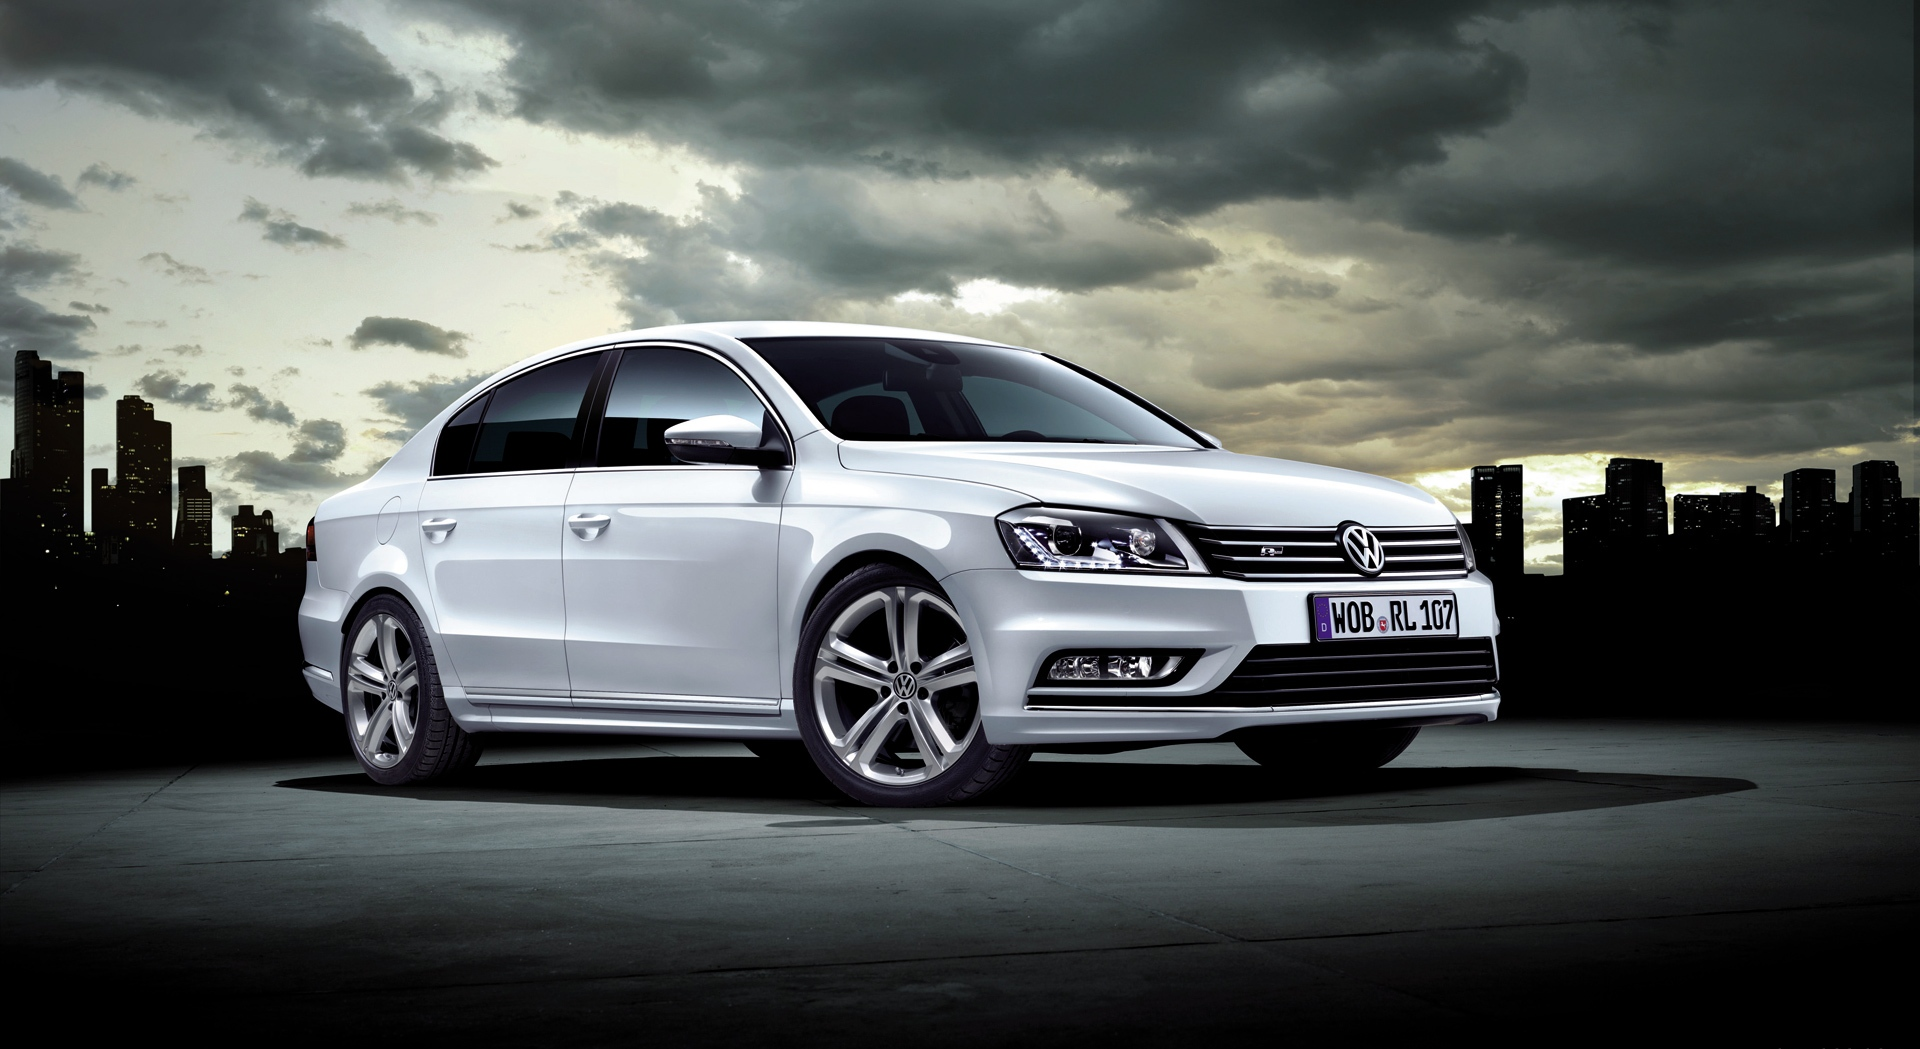 volkswagen passat r line hd desktop wallpapers 4k hd. Black Bedroom Furniture Sets. Home Design Ideas